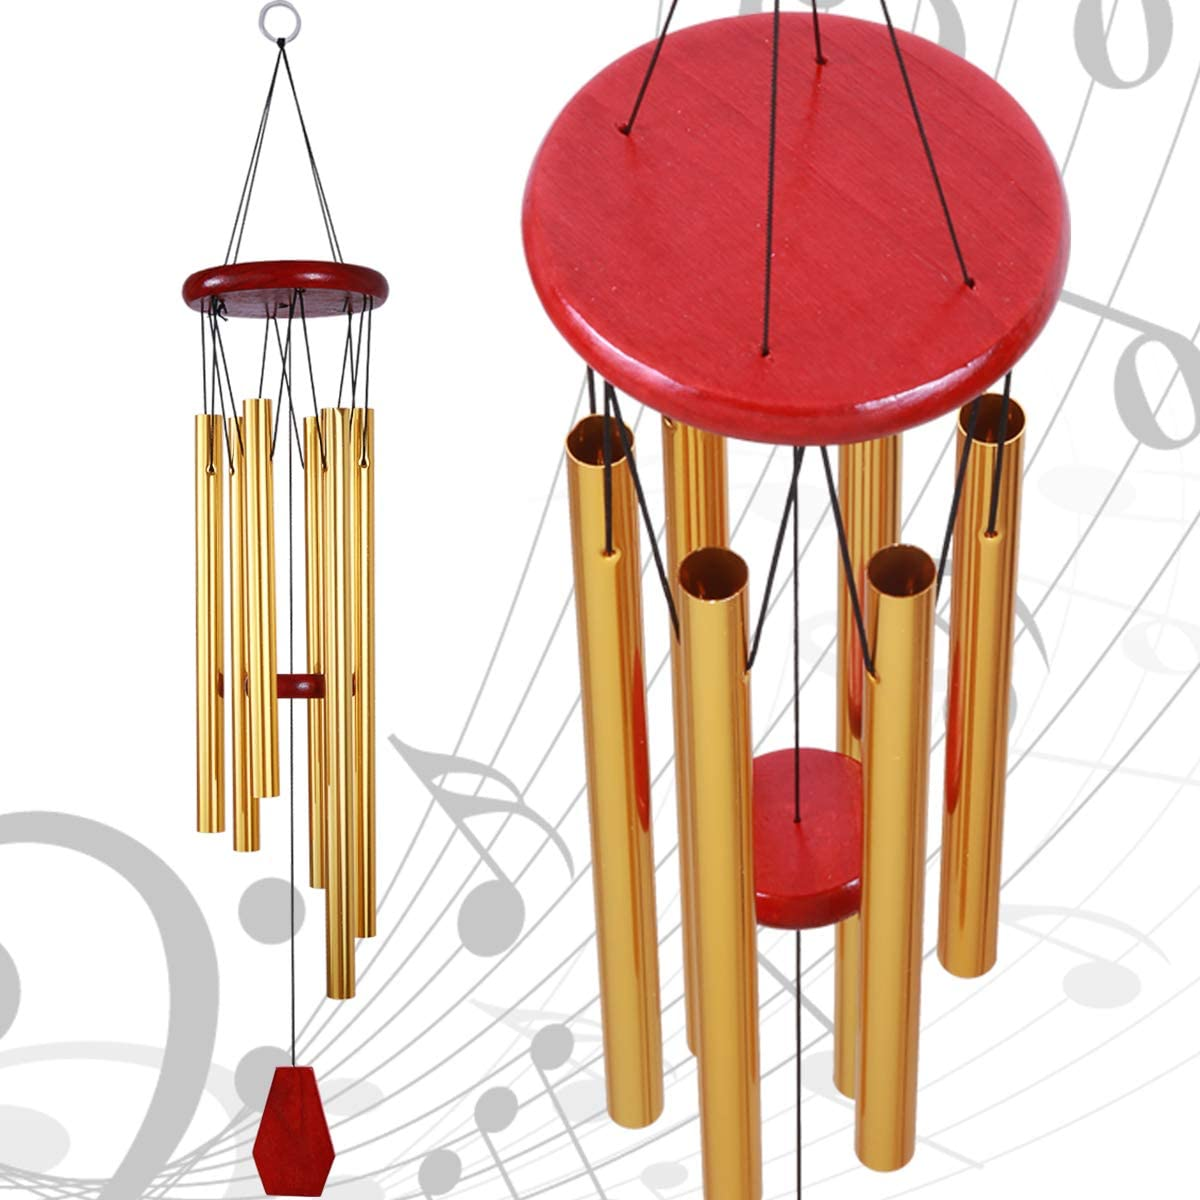 Party Mobile Wind Catcher Romantic Wind-Bell for Home Garden Decoration 24.8 Inches Pure Hand-Made Metal Musical Wind Bells with 6 Bronze Aluminum Tubes Festival Decor xxschy Owl Wind Chimes